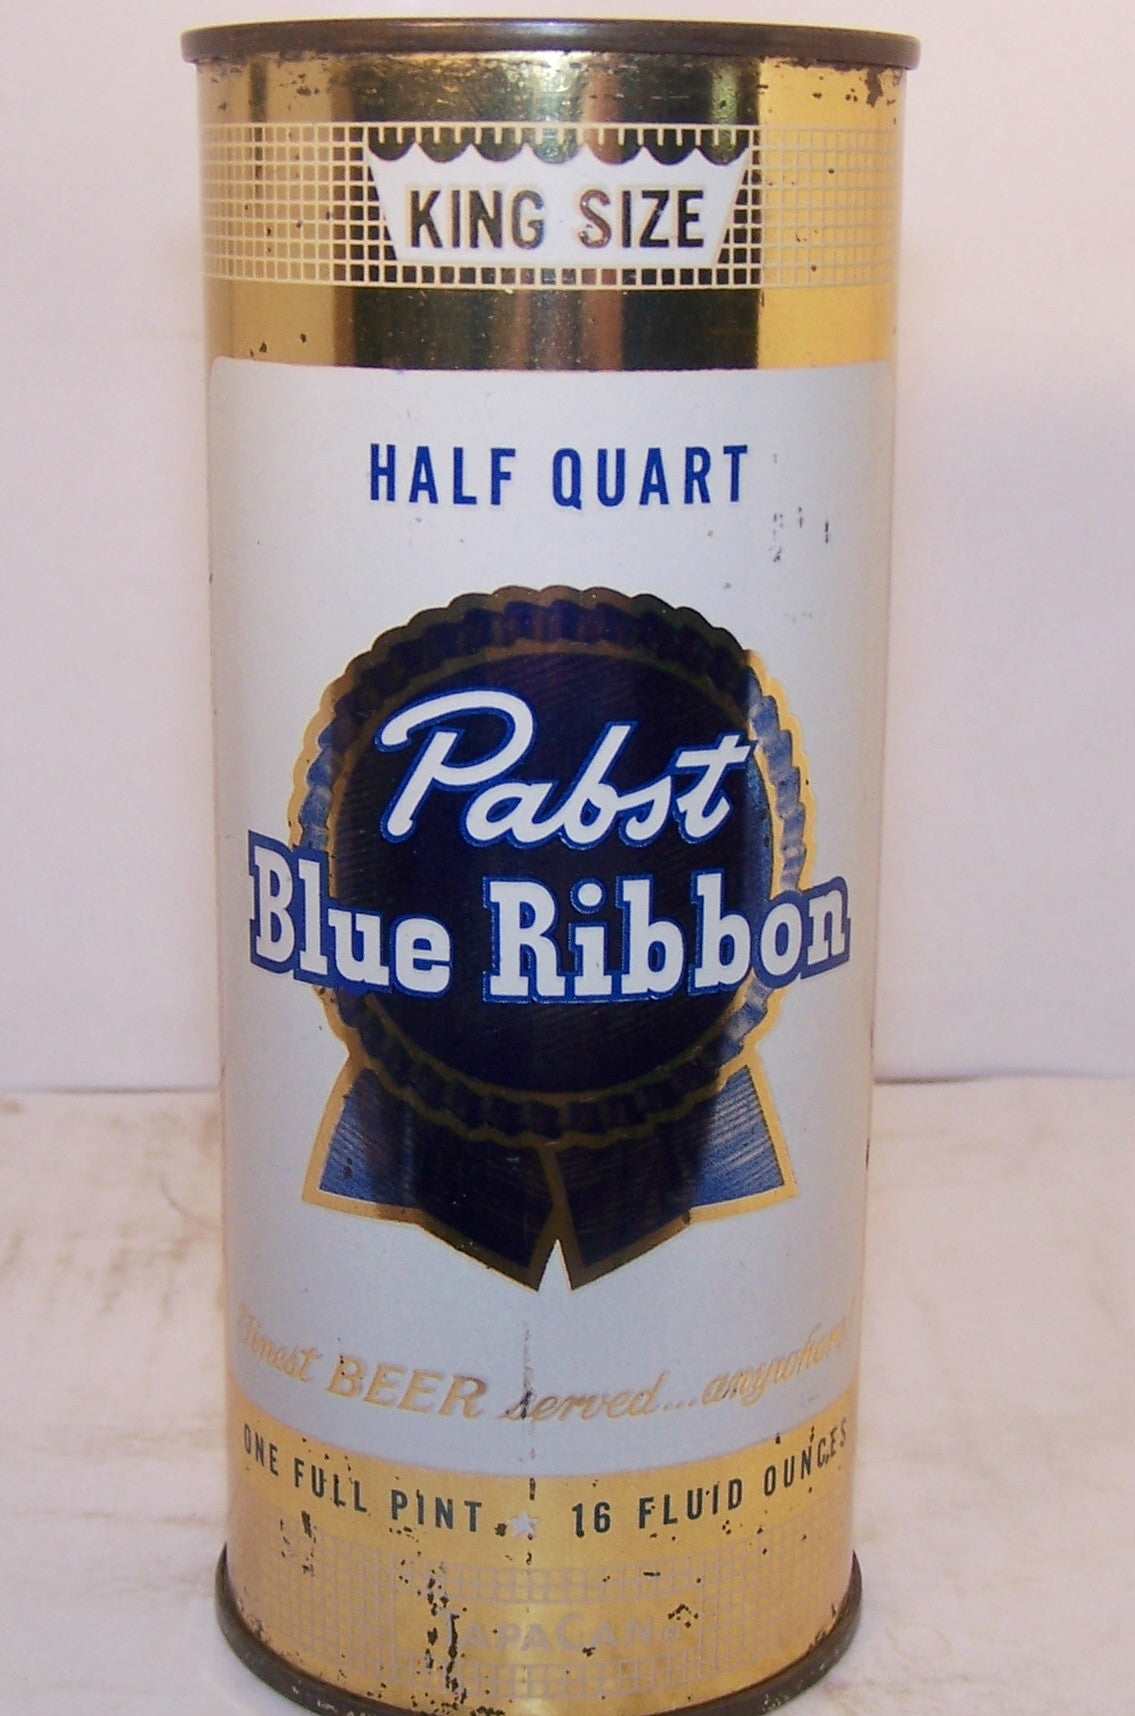 Pabst Blue Ribbon king size, USBC 233-24 Grade 1 Sold on 2/11/15